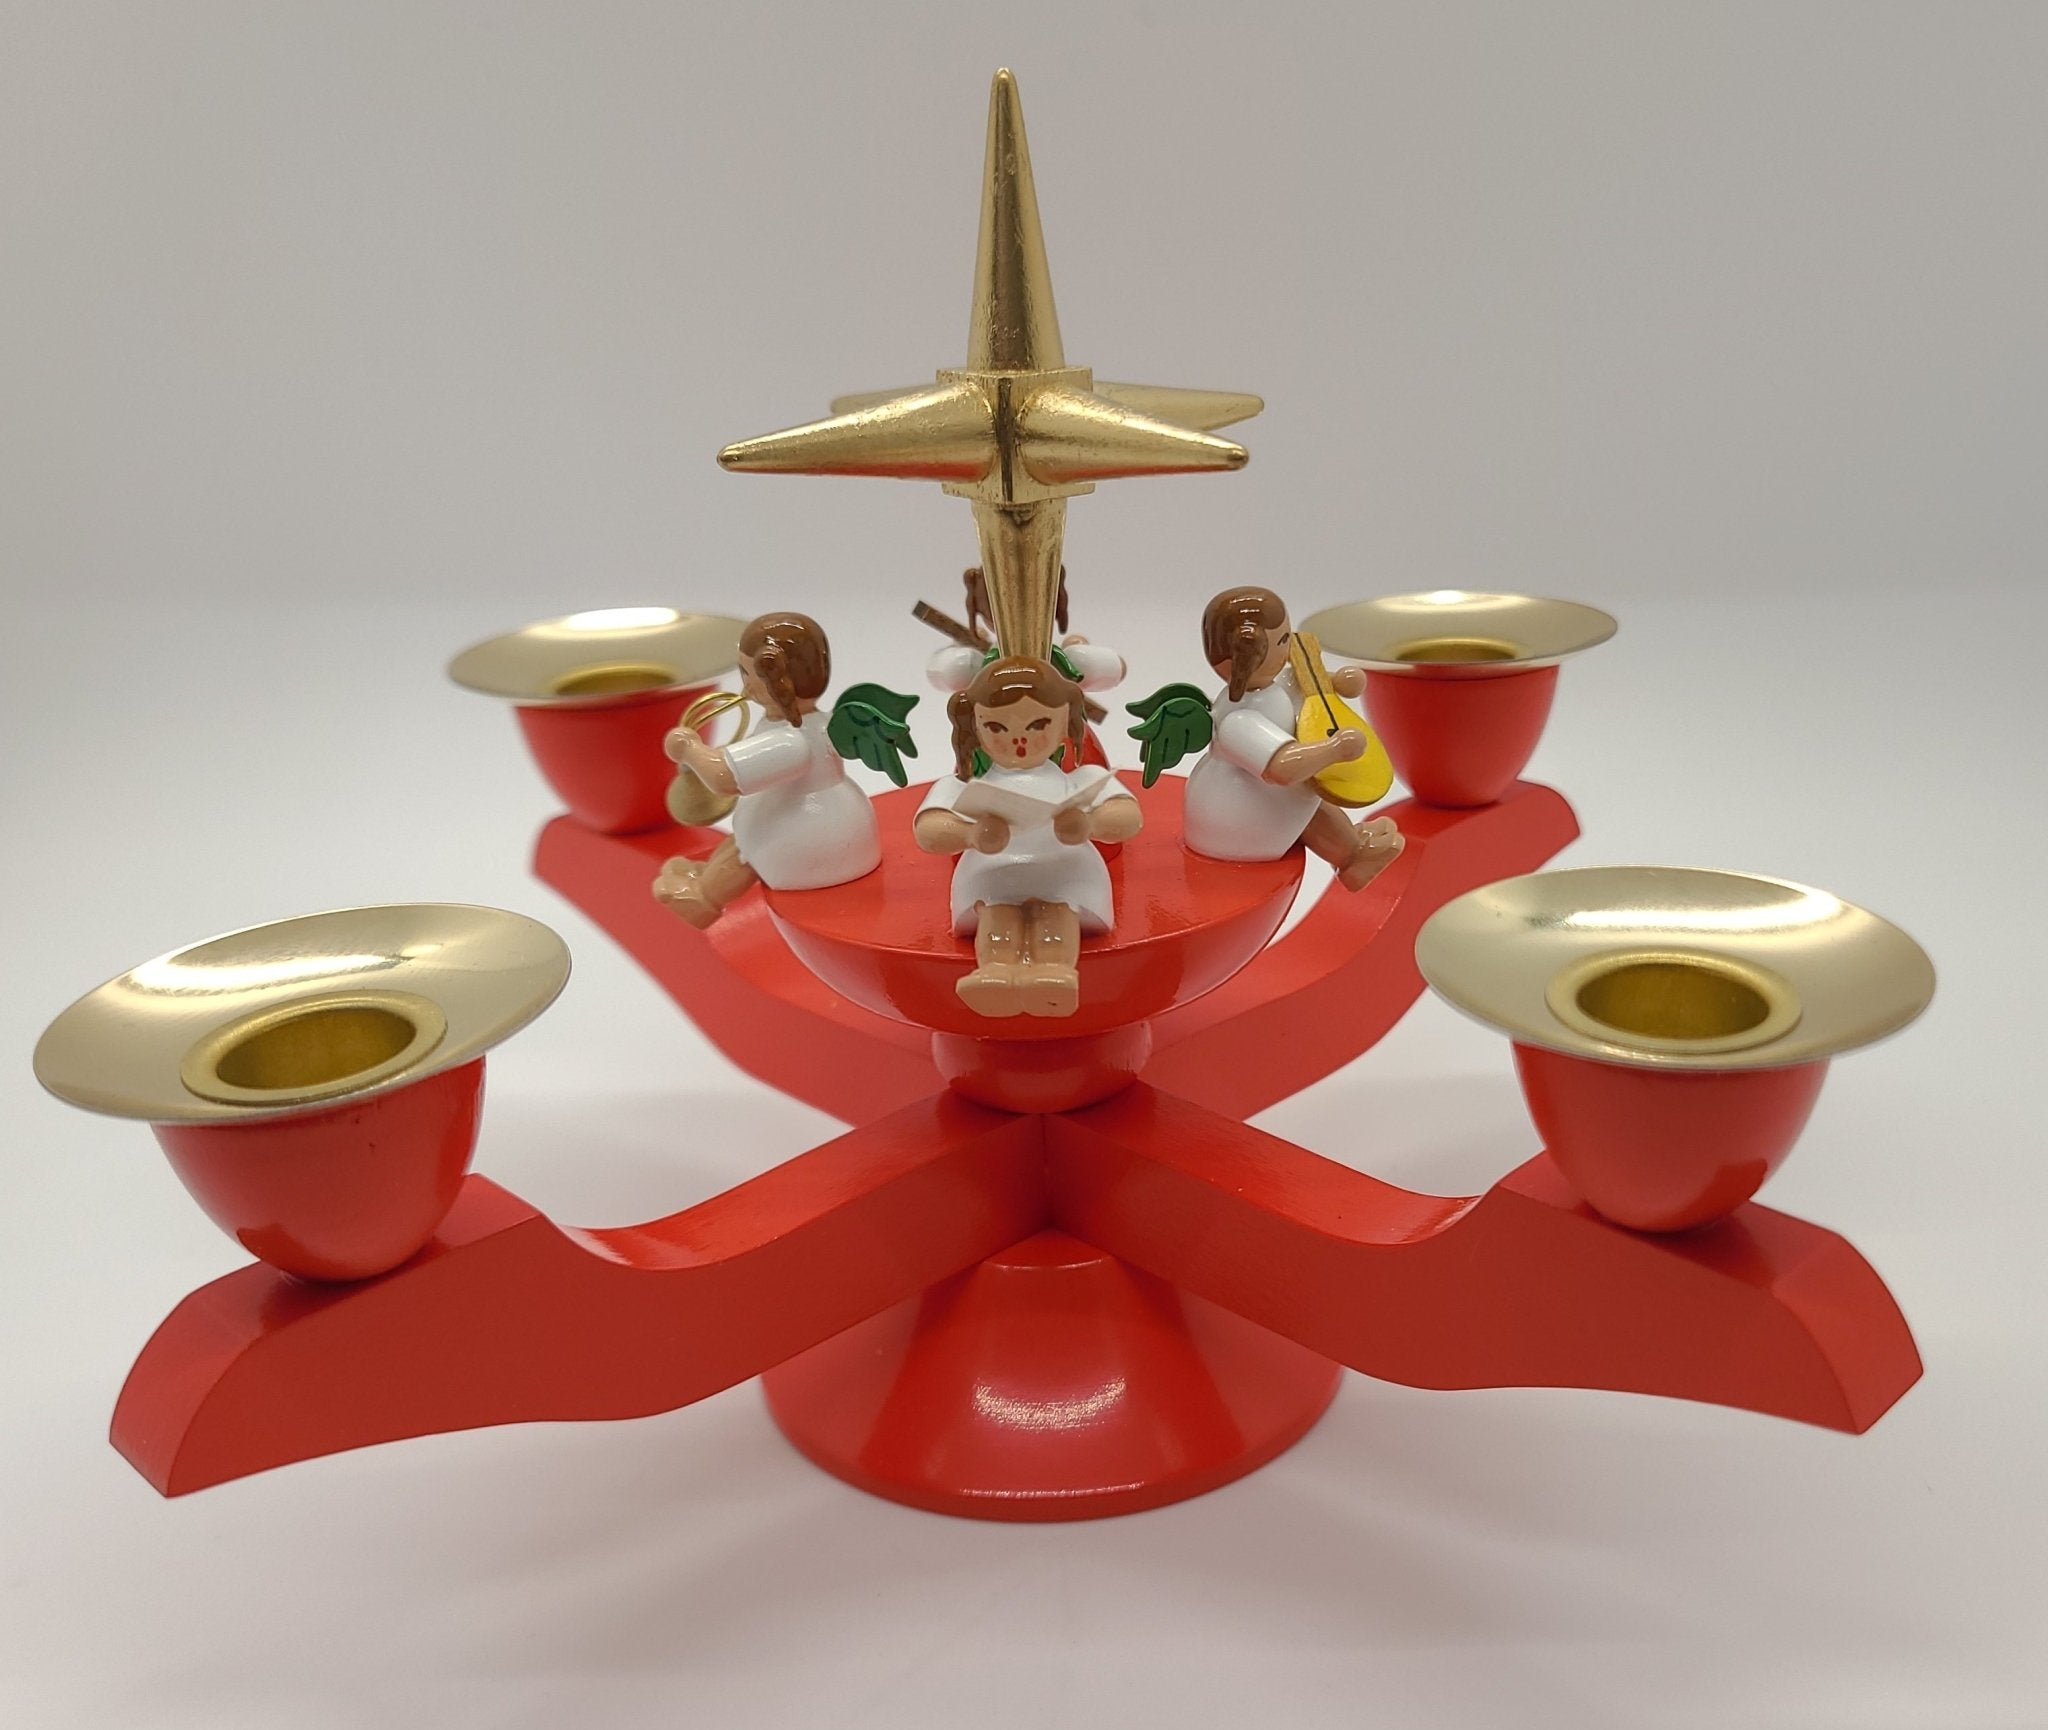 Handmade Wood small Red Candle holder with 4 angels and Gold Star - Schmidt Christmas Market Christmas Decoration